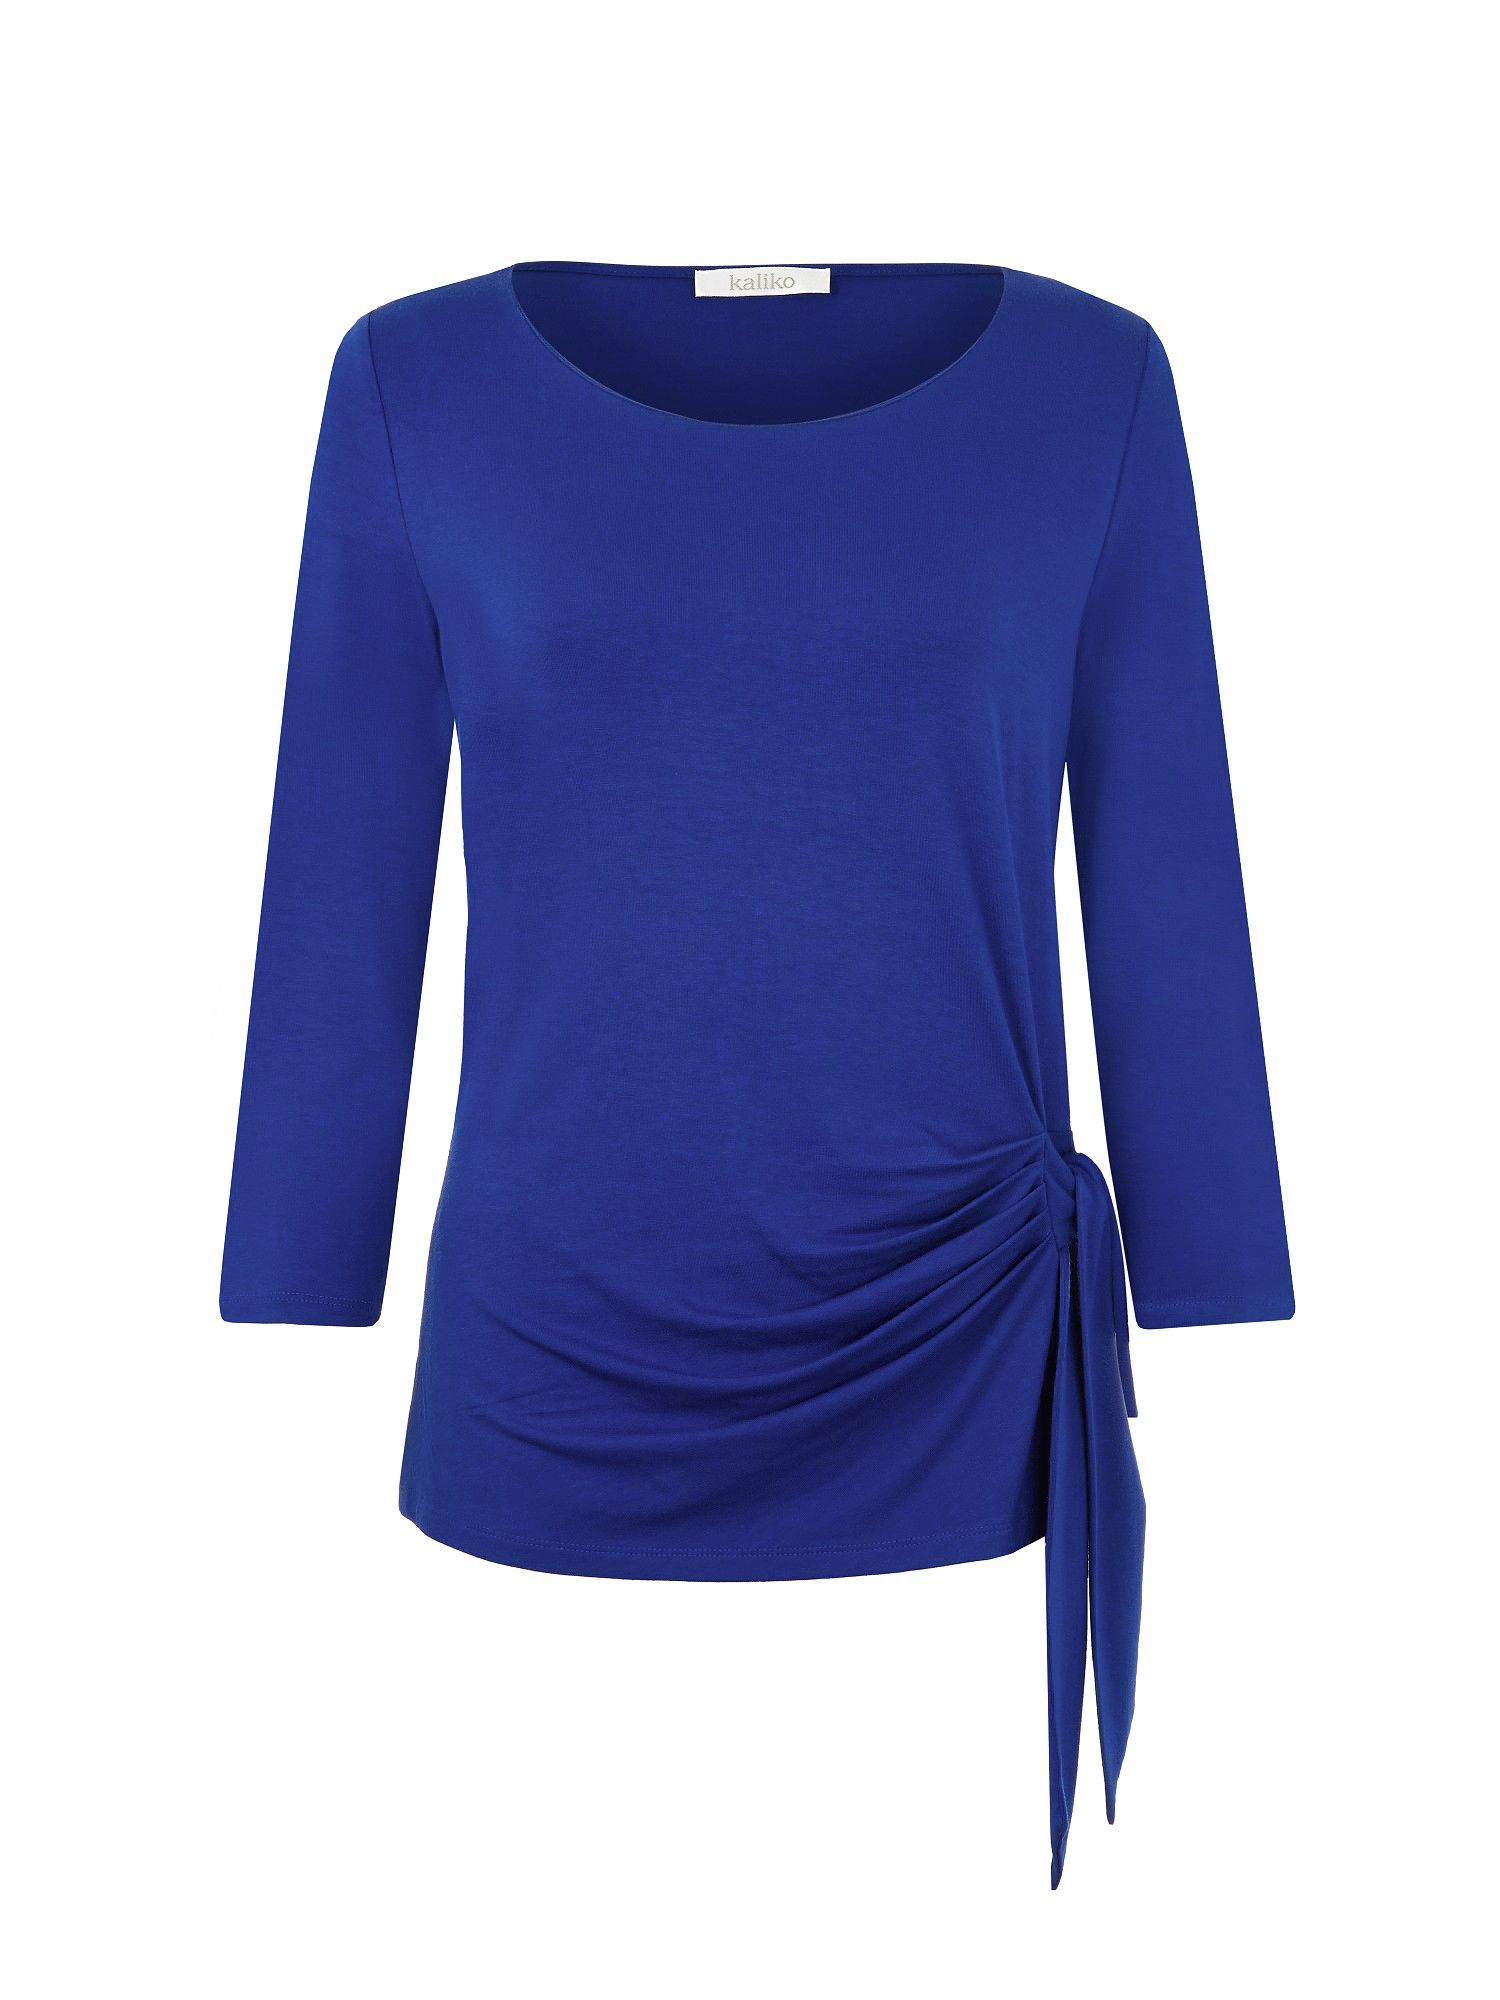 Cobalt Side Tie Top